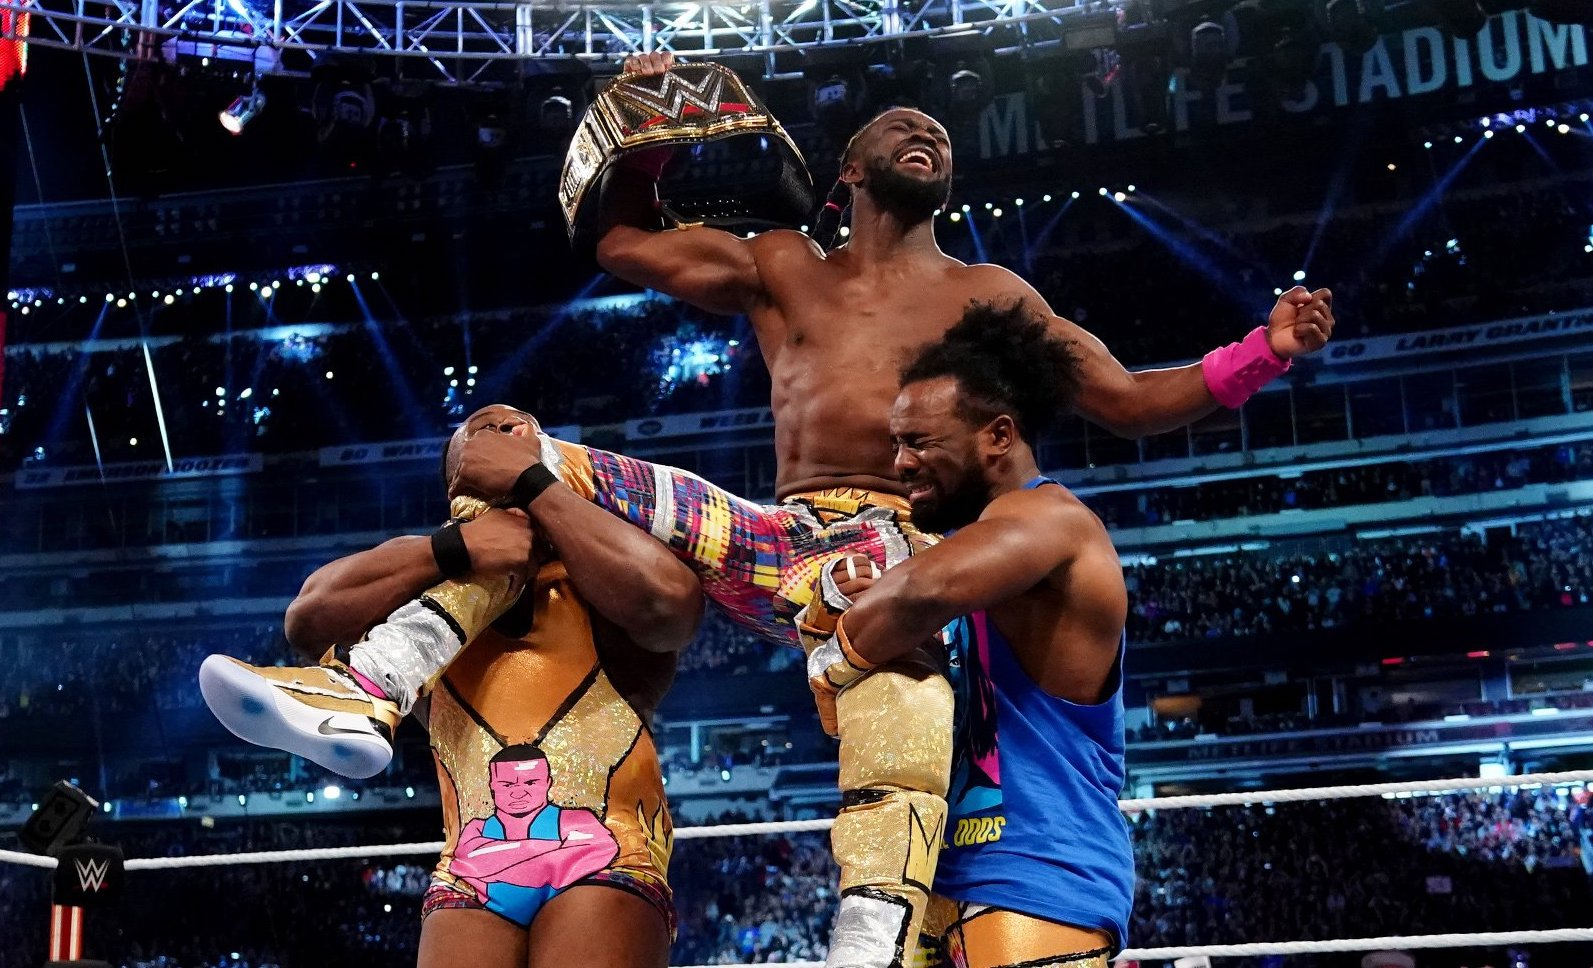 WWE Wrestlemania 35 Review 04/07/2019